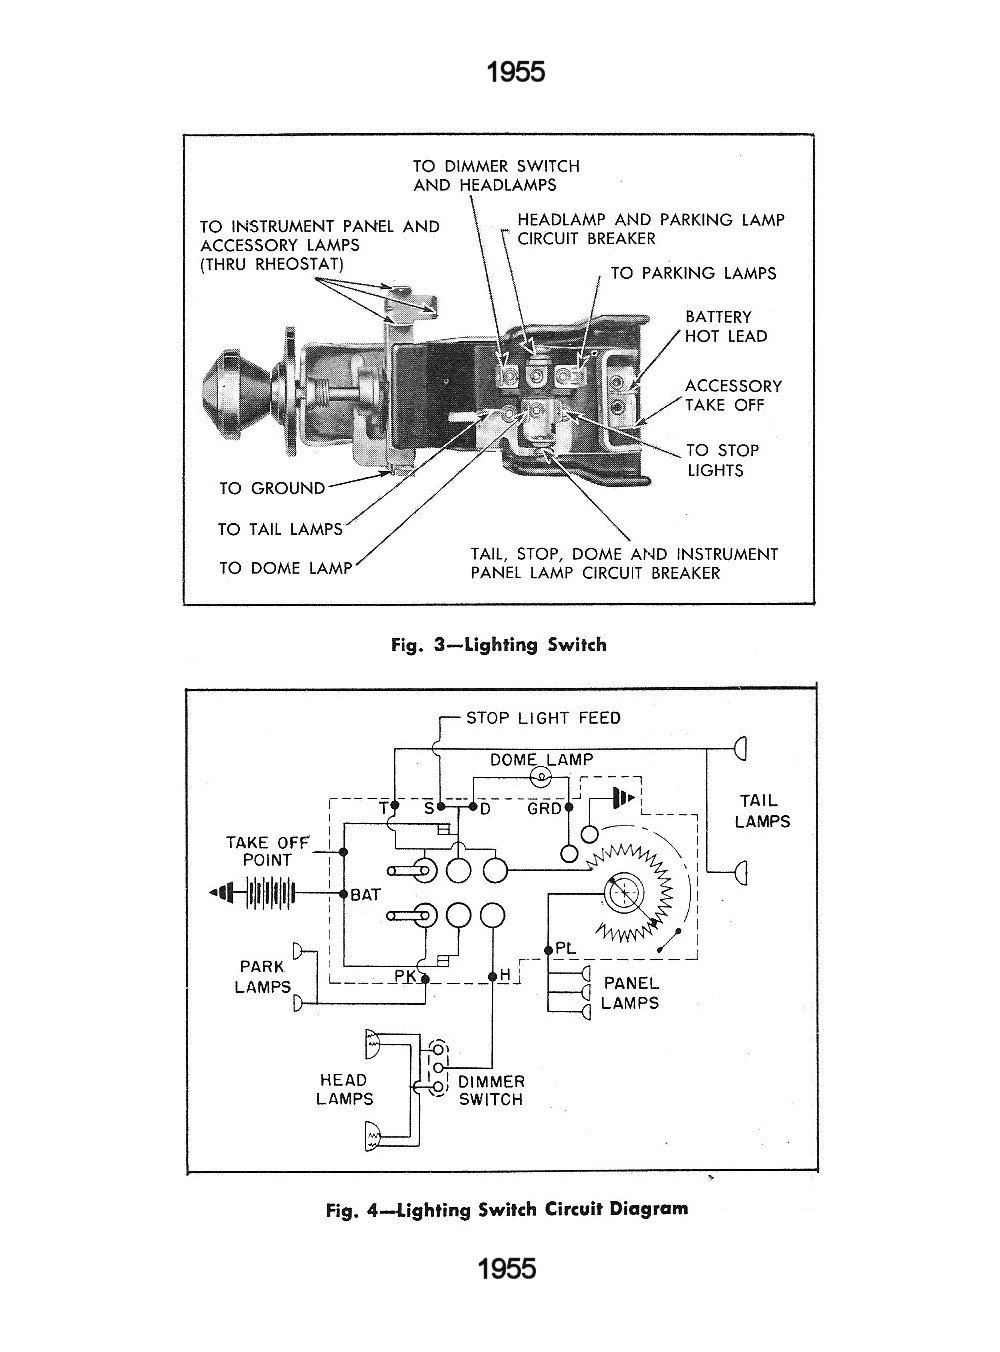 medium resolution of  1955 lighting switch circuit